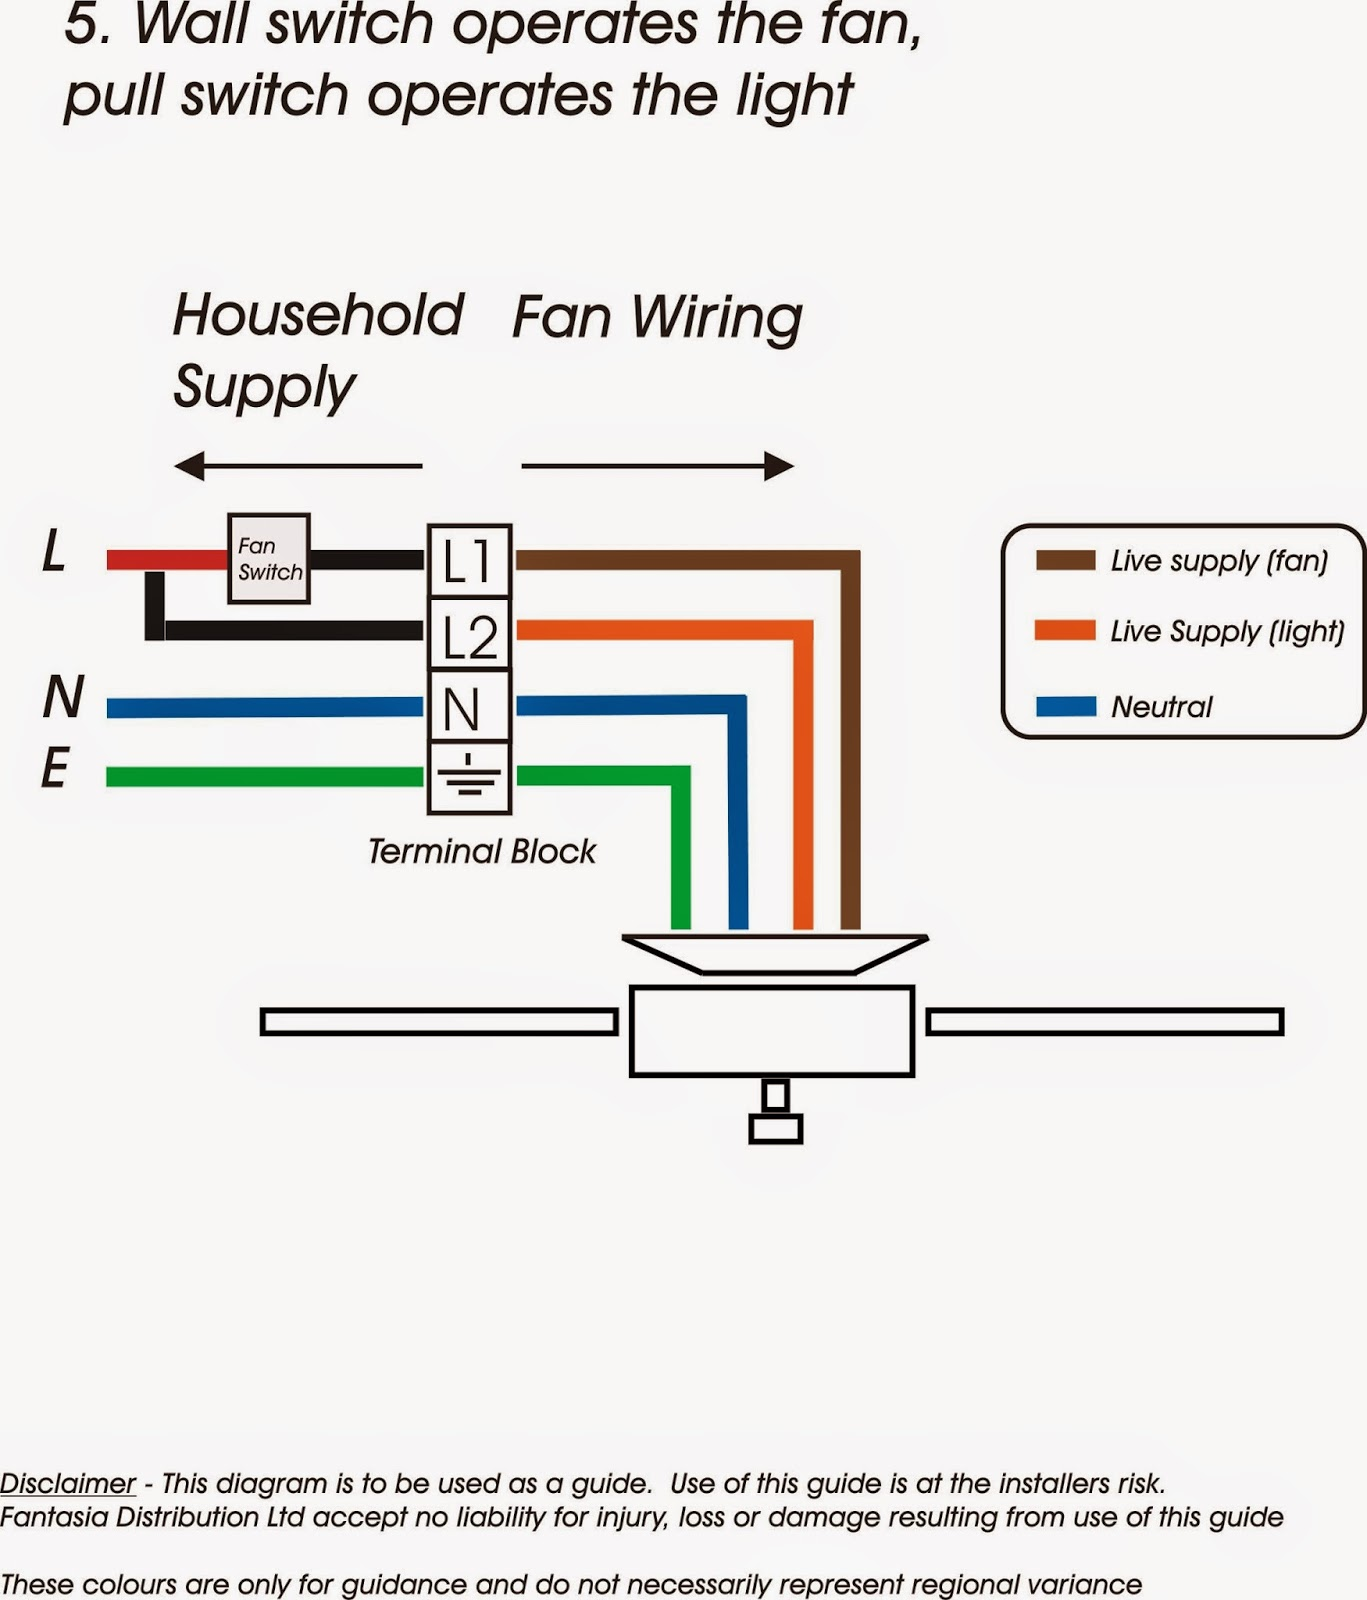 hight resolution of electric work wiring diagramtable fan wiring diagram 21